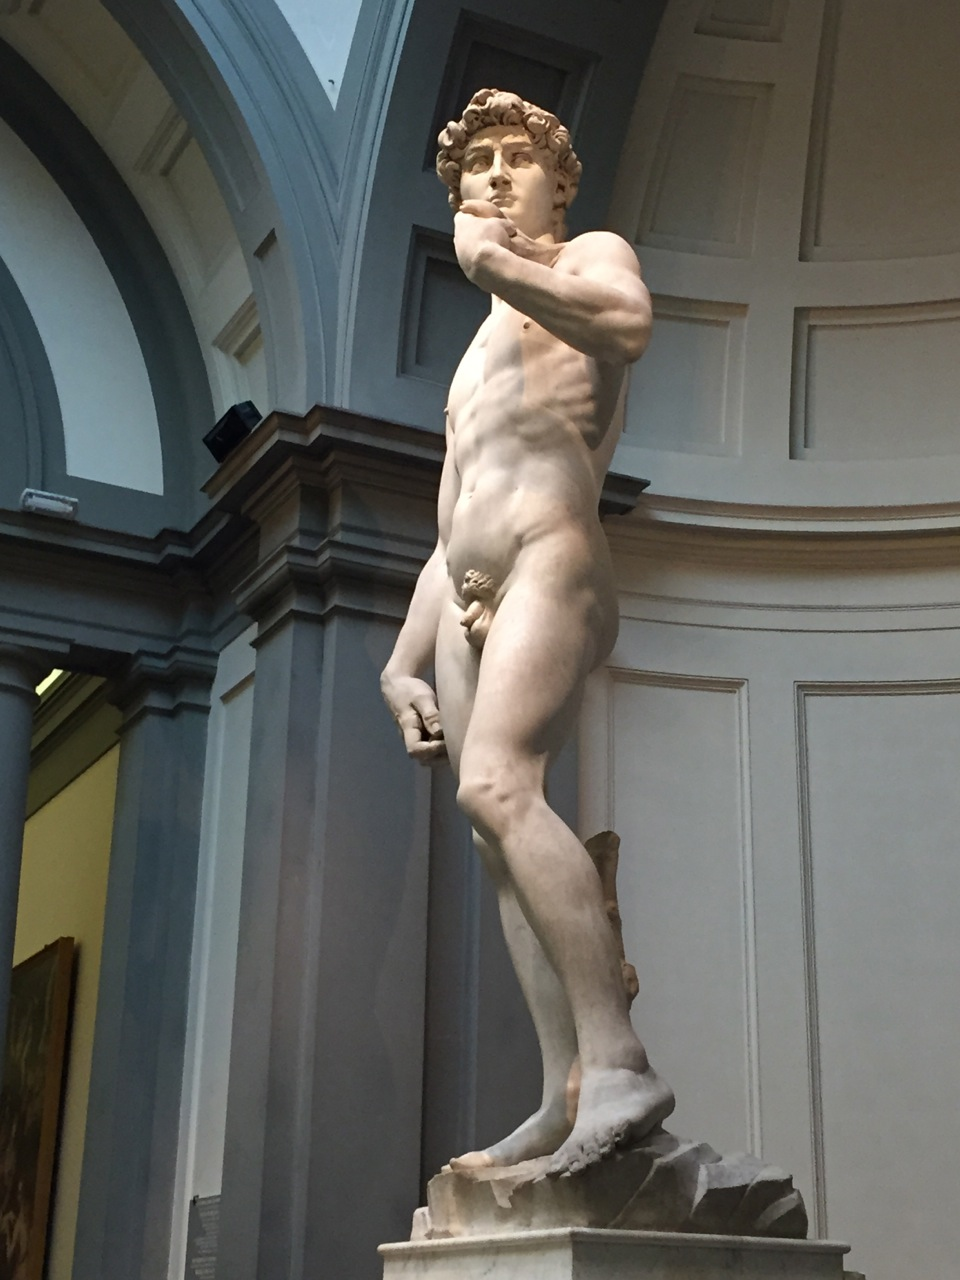 Michelangelo's statue of David in Florence, with the Biblical David preparing to slay Goliath with a slingshot.